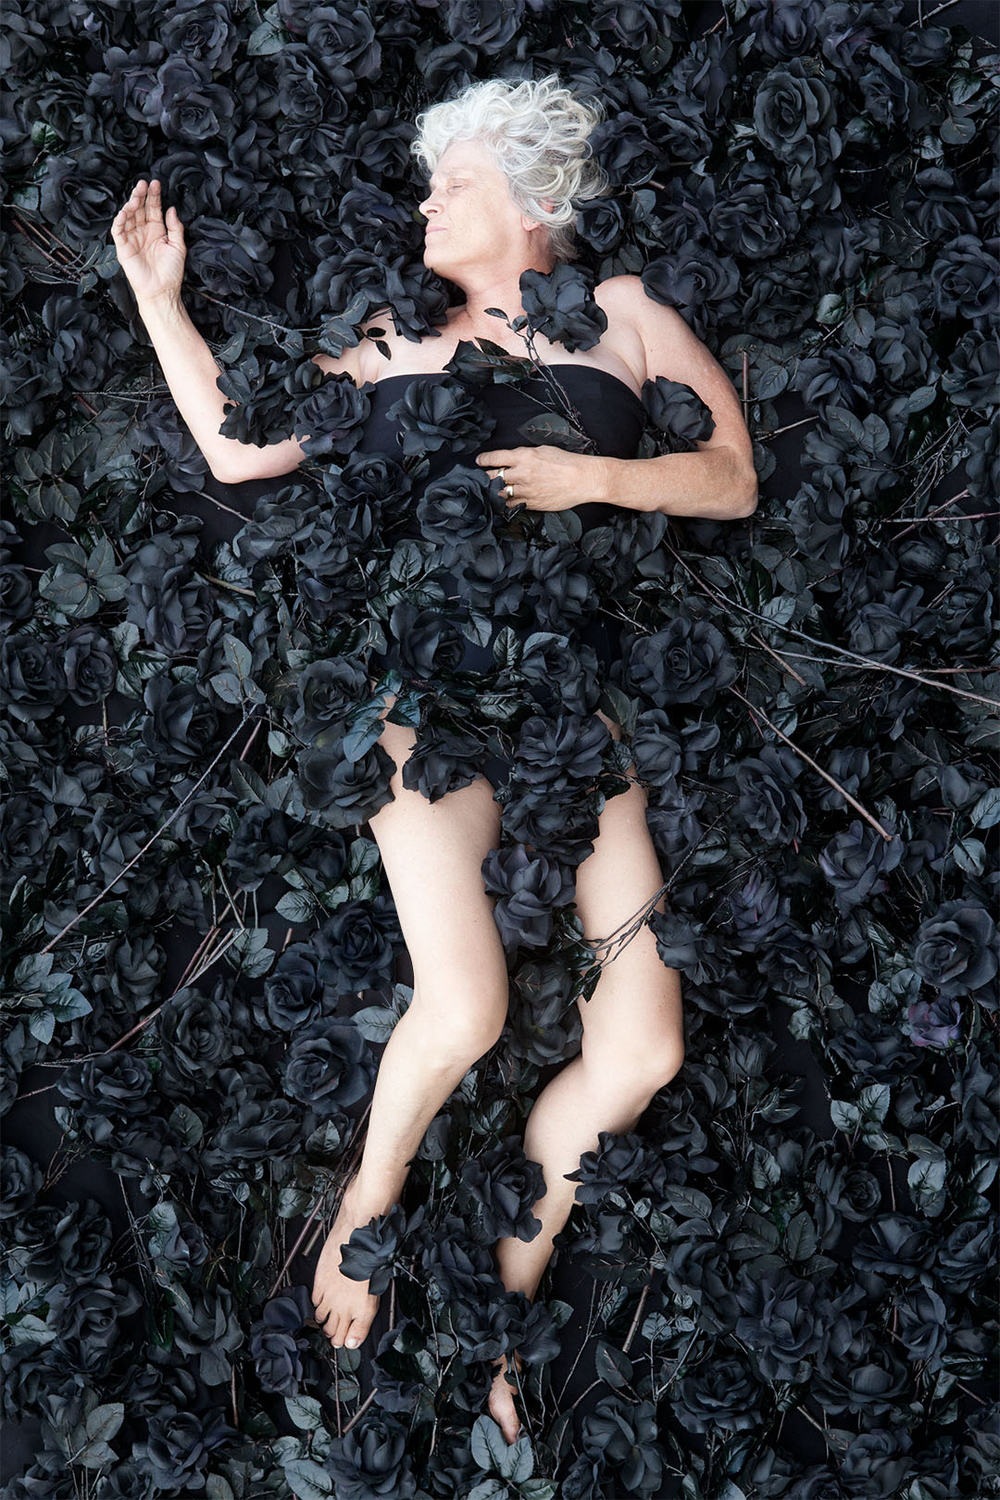 'Self Portrait with Black Roses' - 30cm x 110cm - Chromogenic Print - 2014